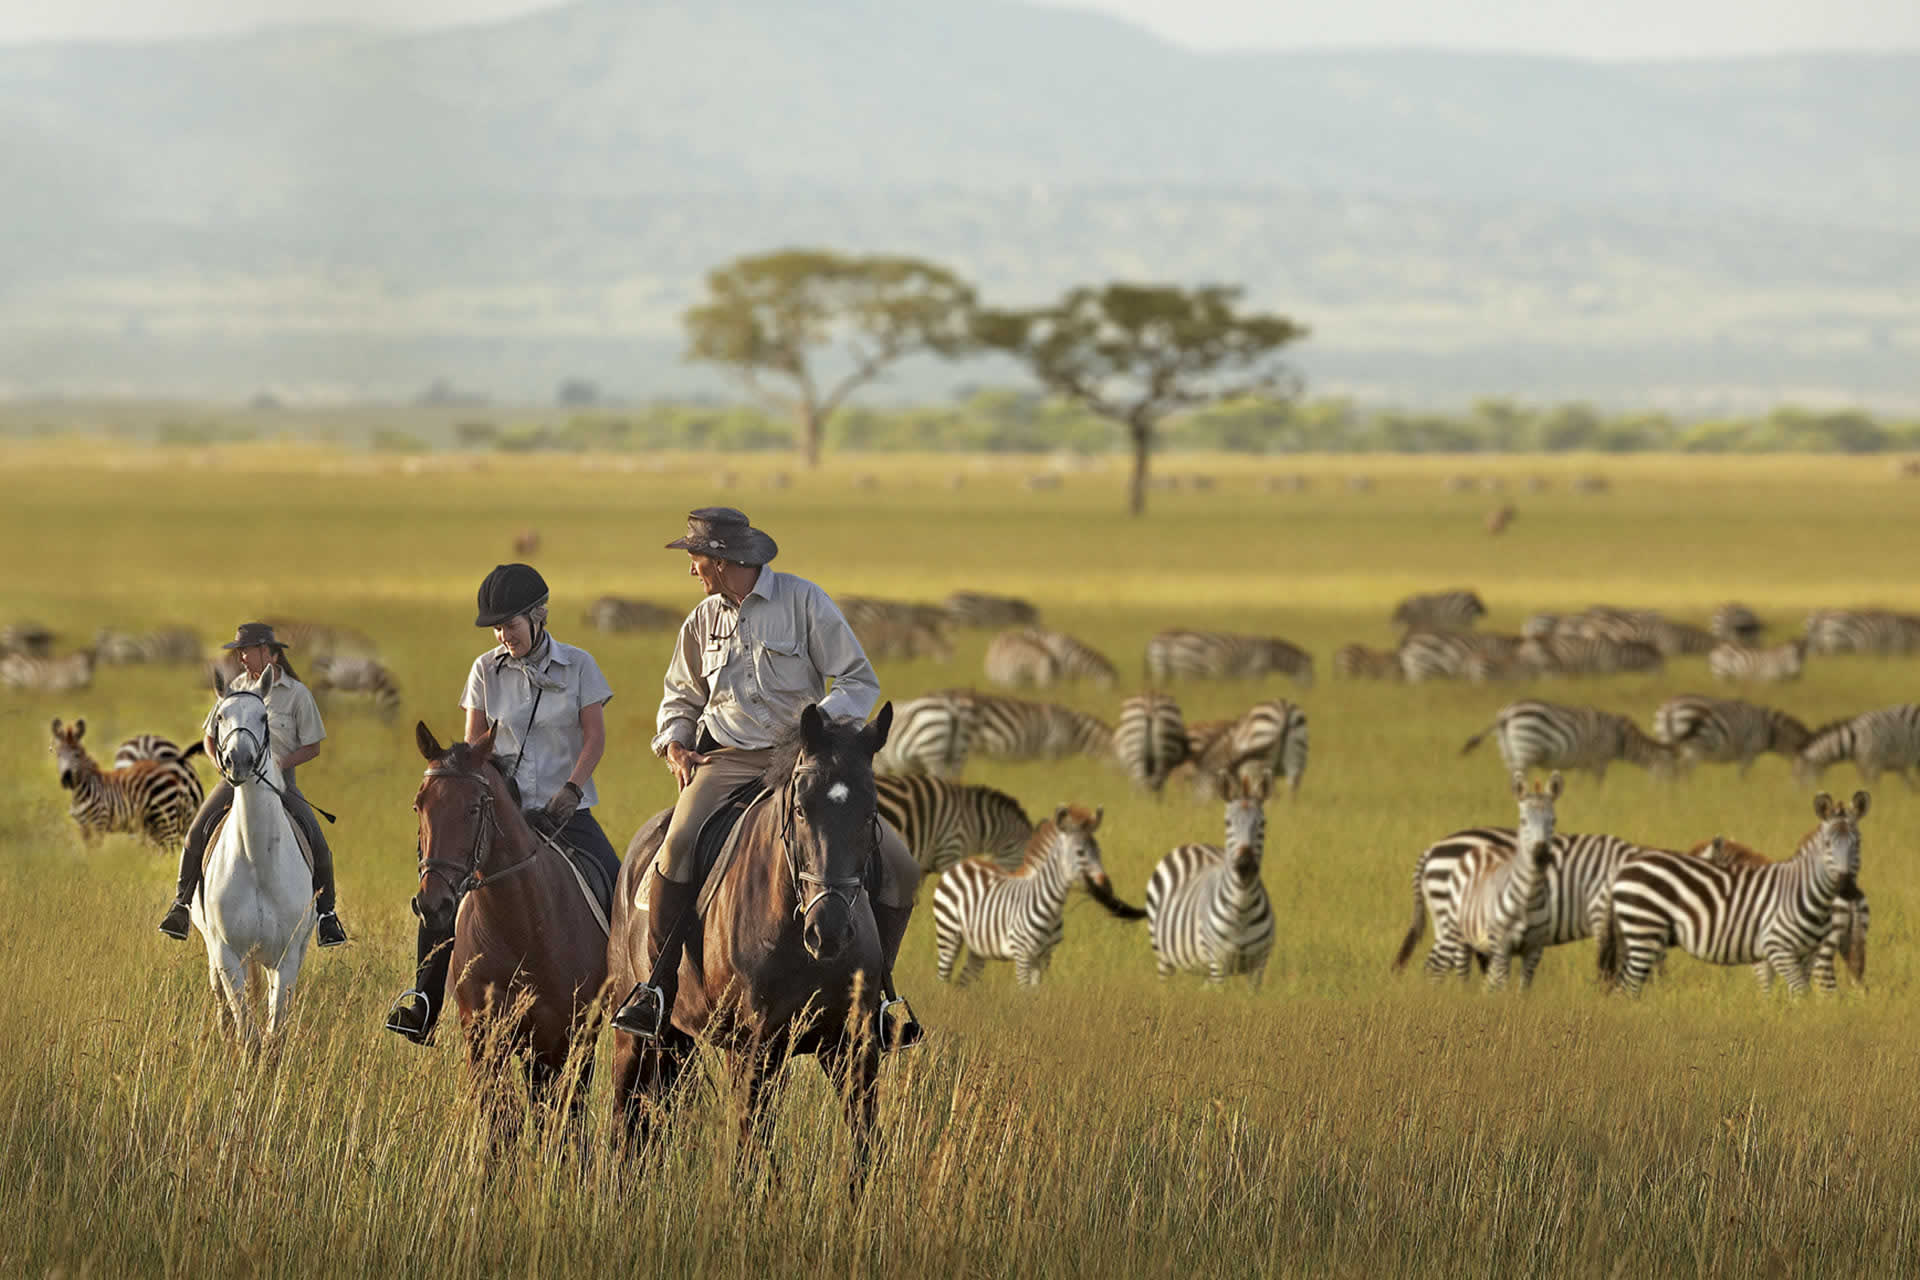 Horse Riding Safaris Riding Holidays In Africa Safari Lodges - 10 best safaris in africa